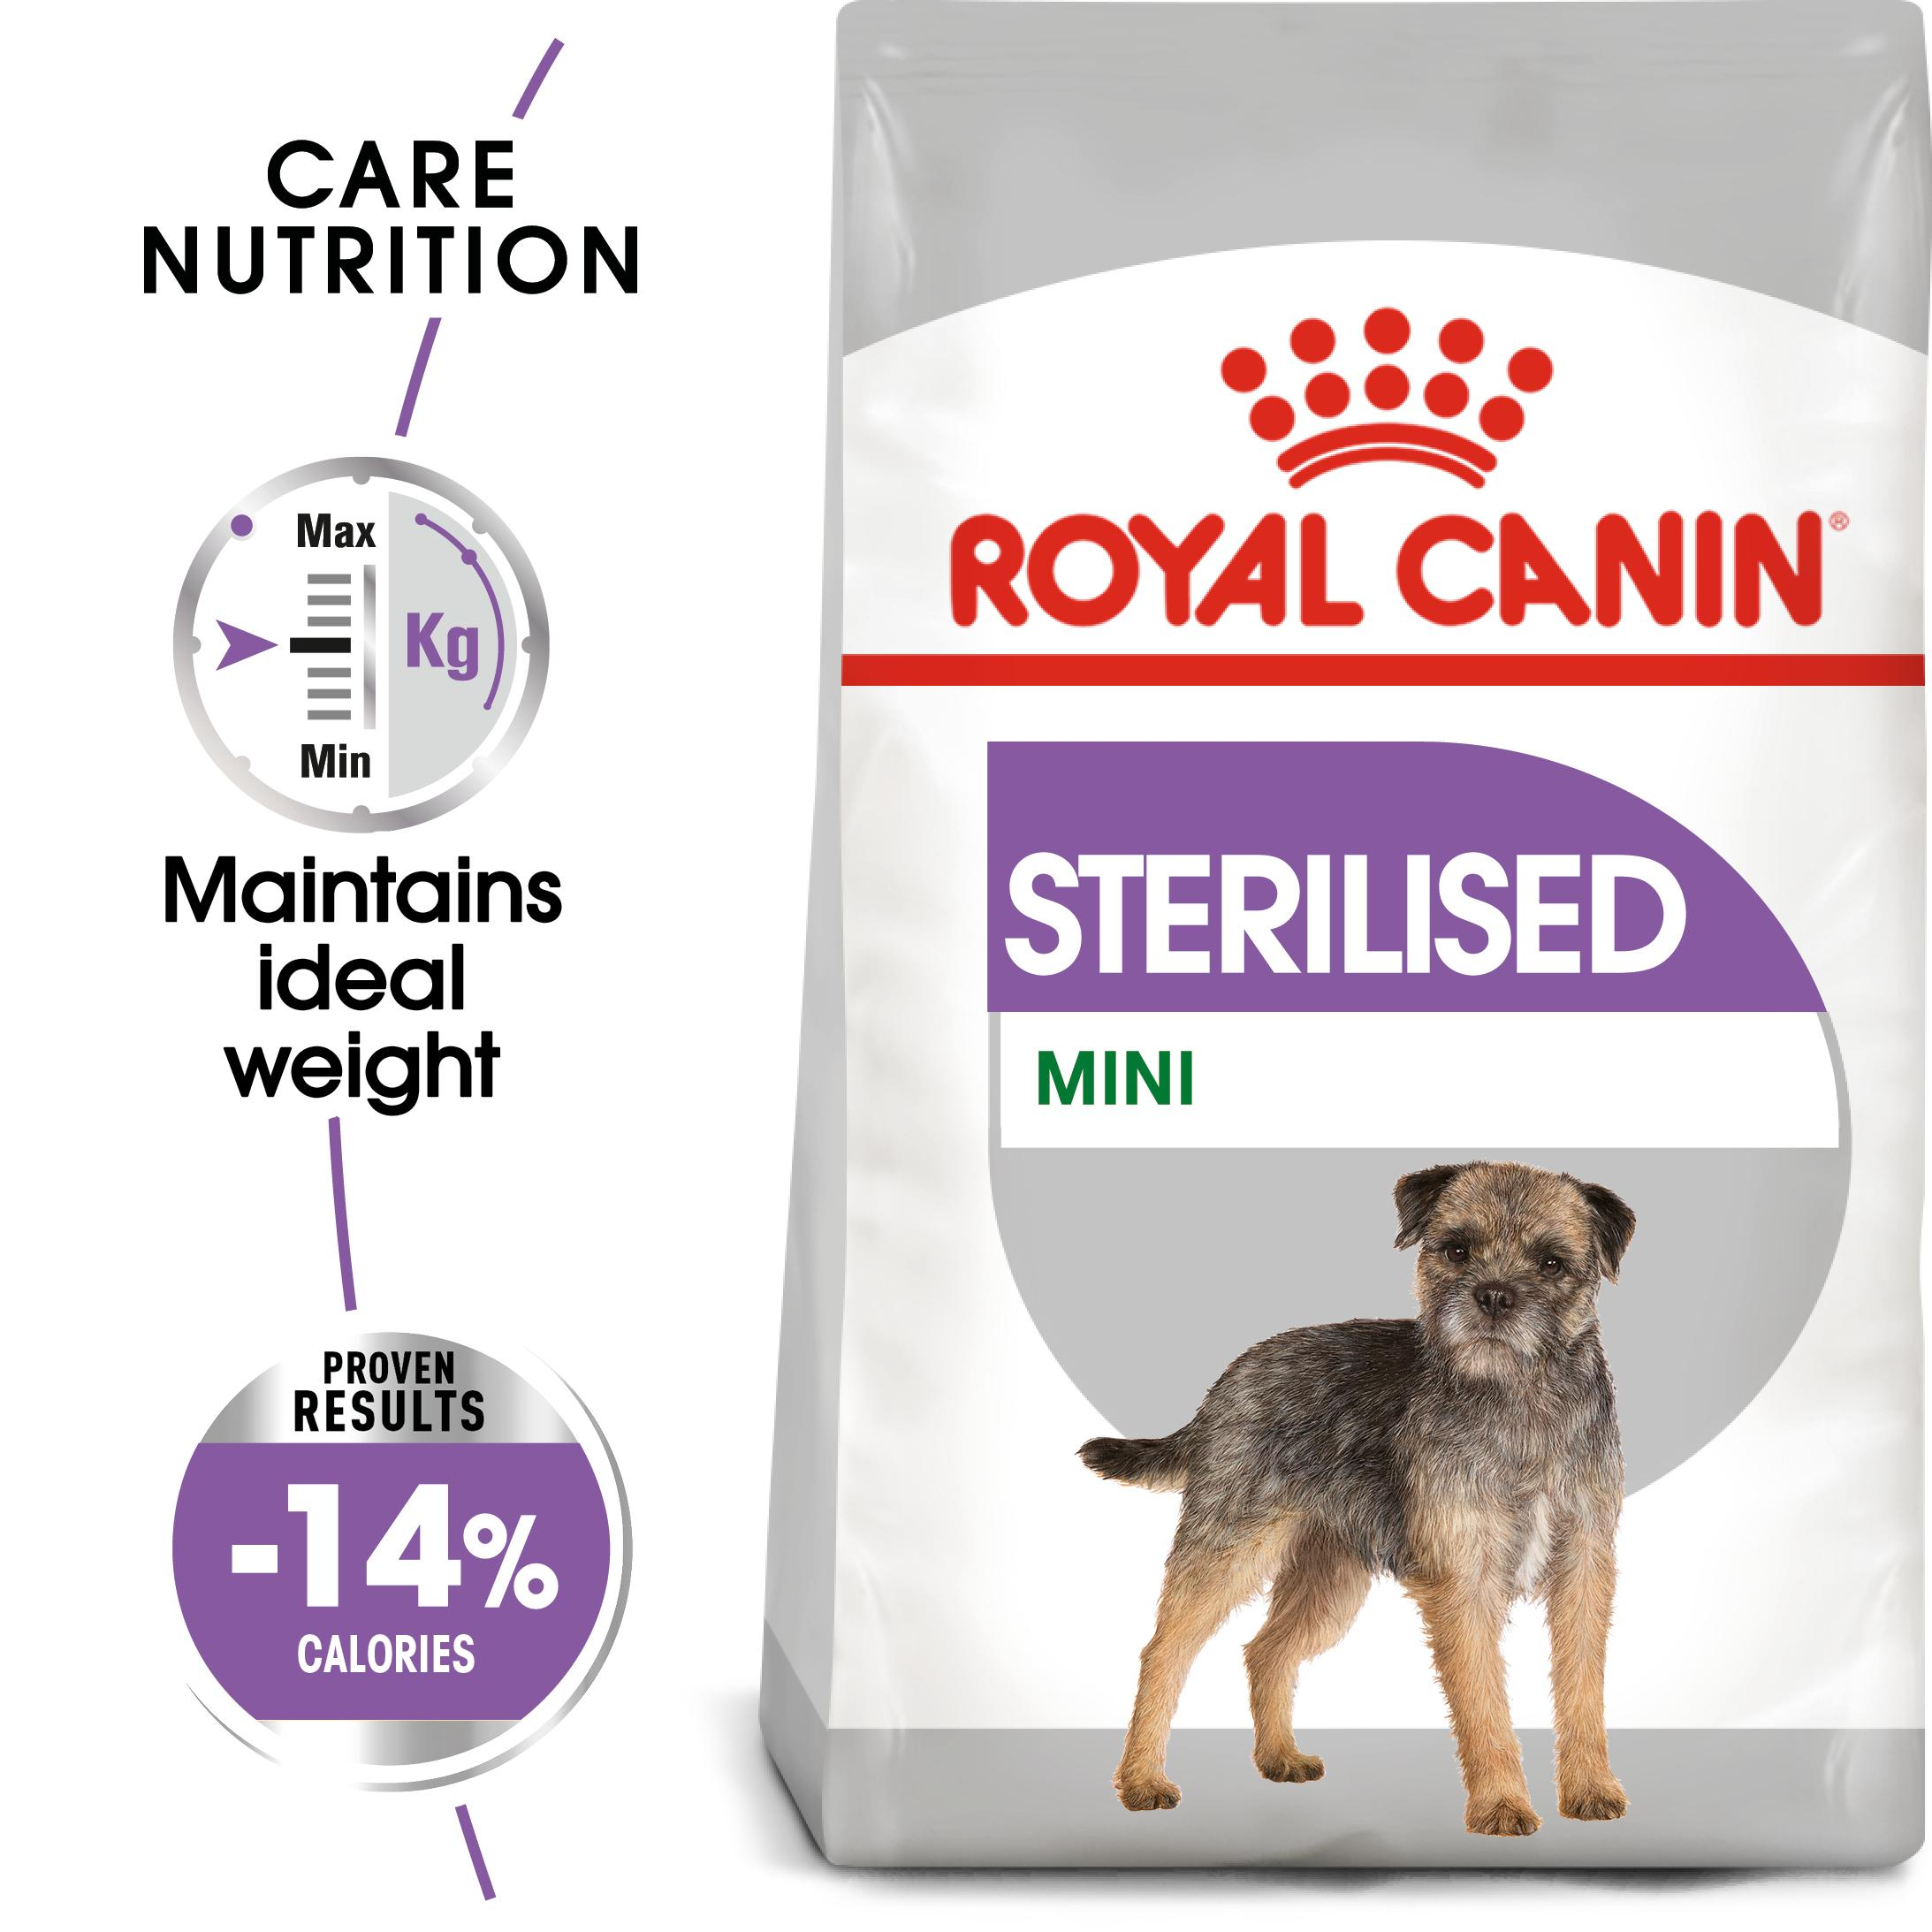 royal canin mini sterilised care